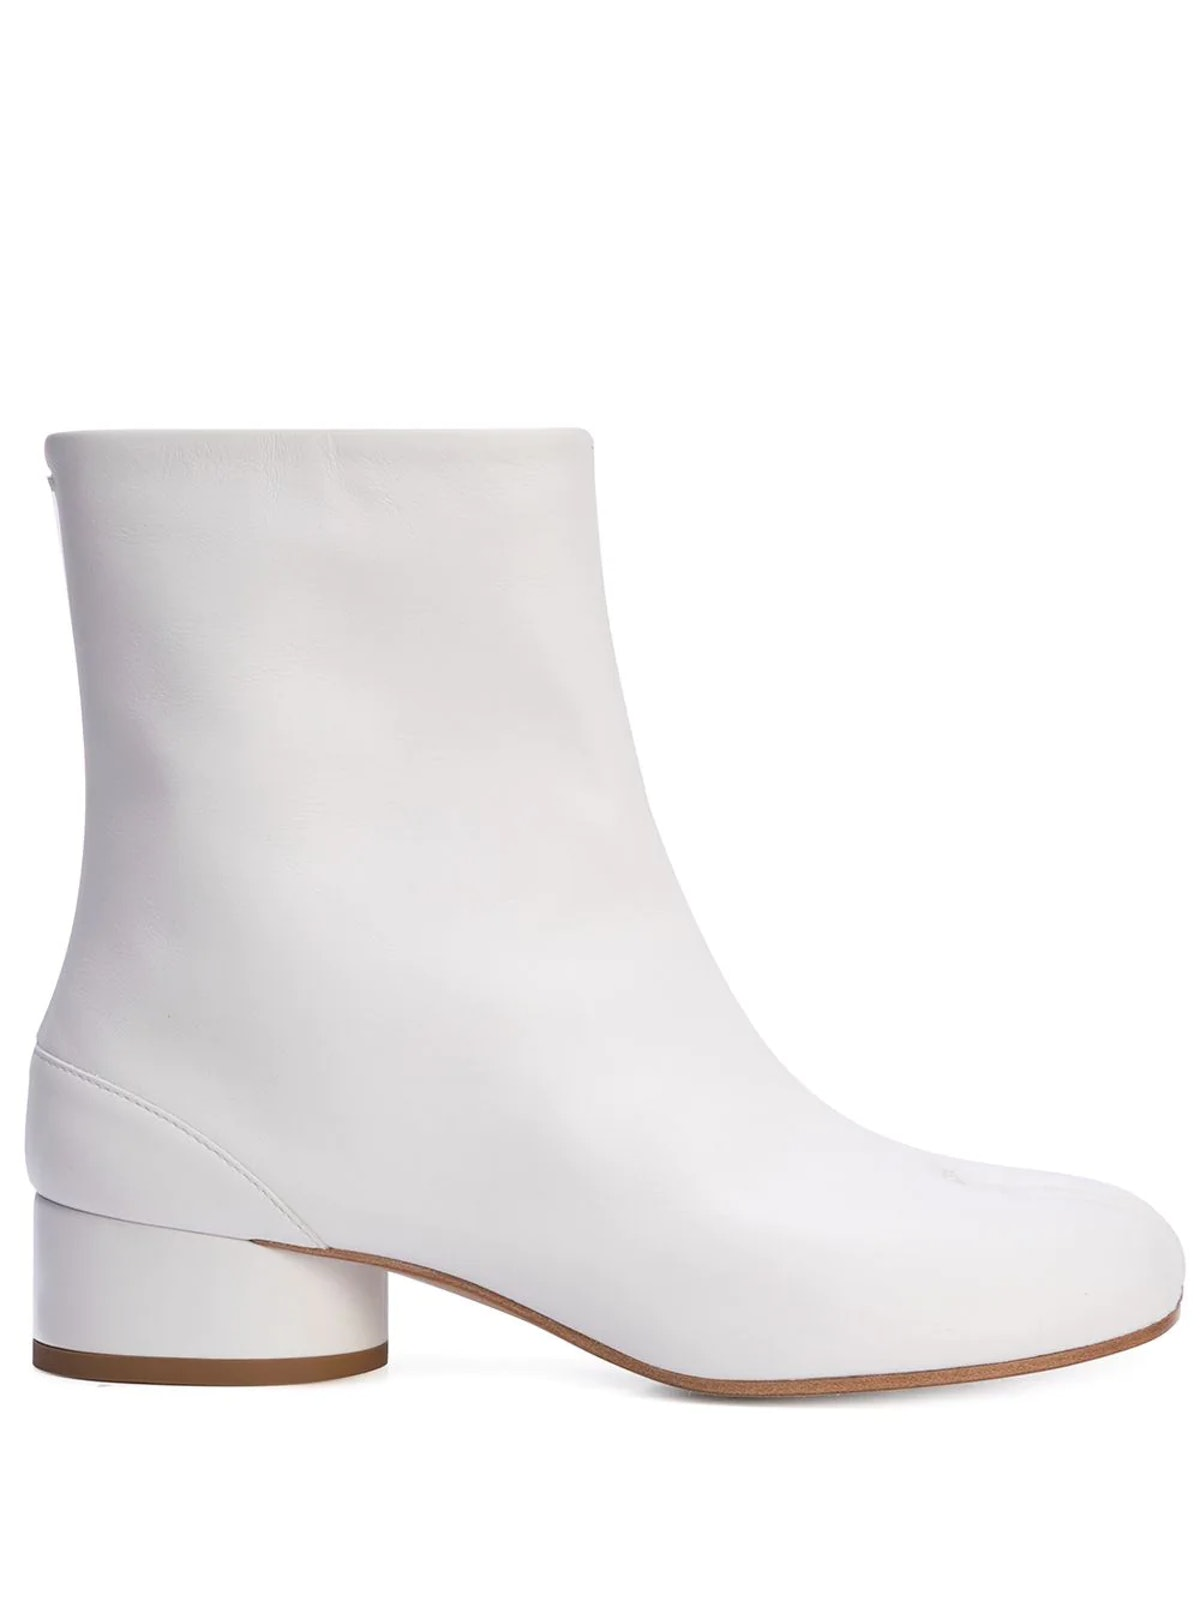 White Tabi toe ankle boot from Maison Margiela, available to shop on Farfetch.